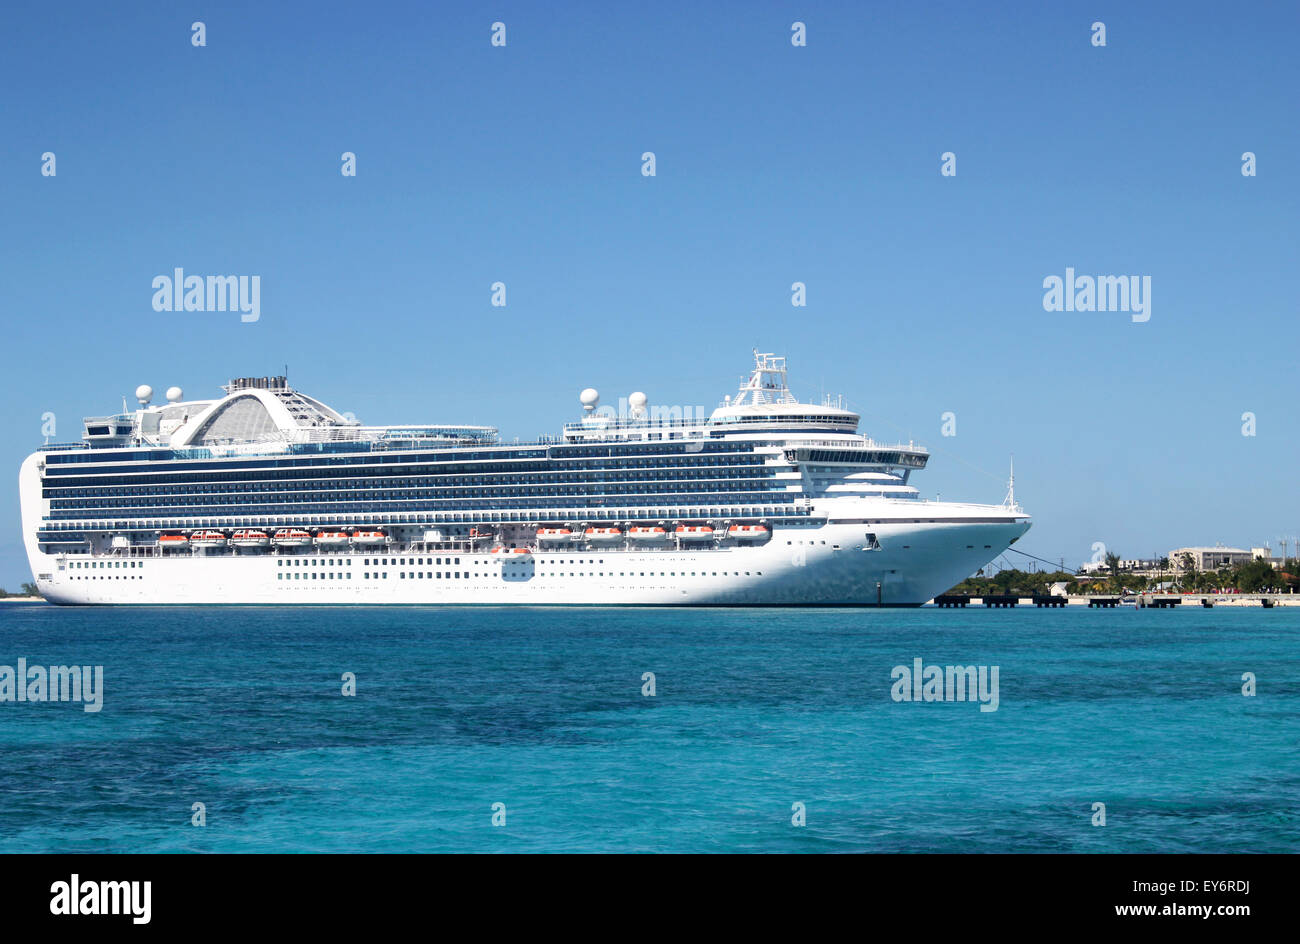 Tropical Cruise Vacation - Stock Image